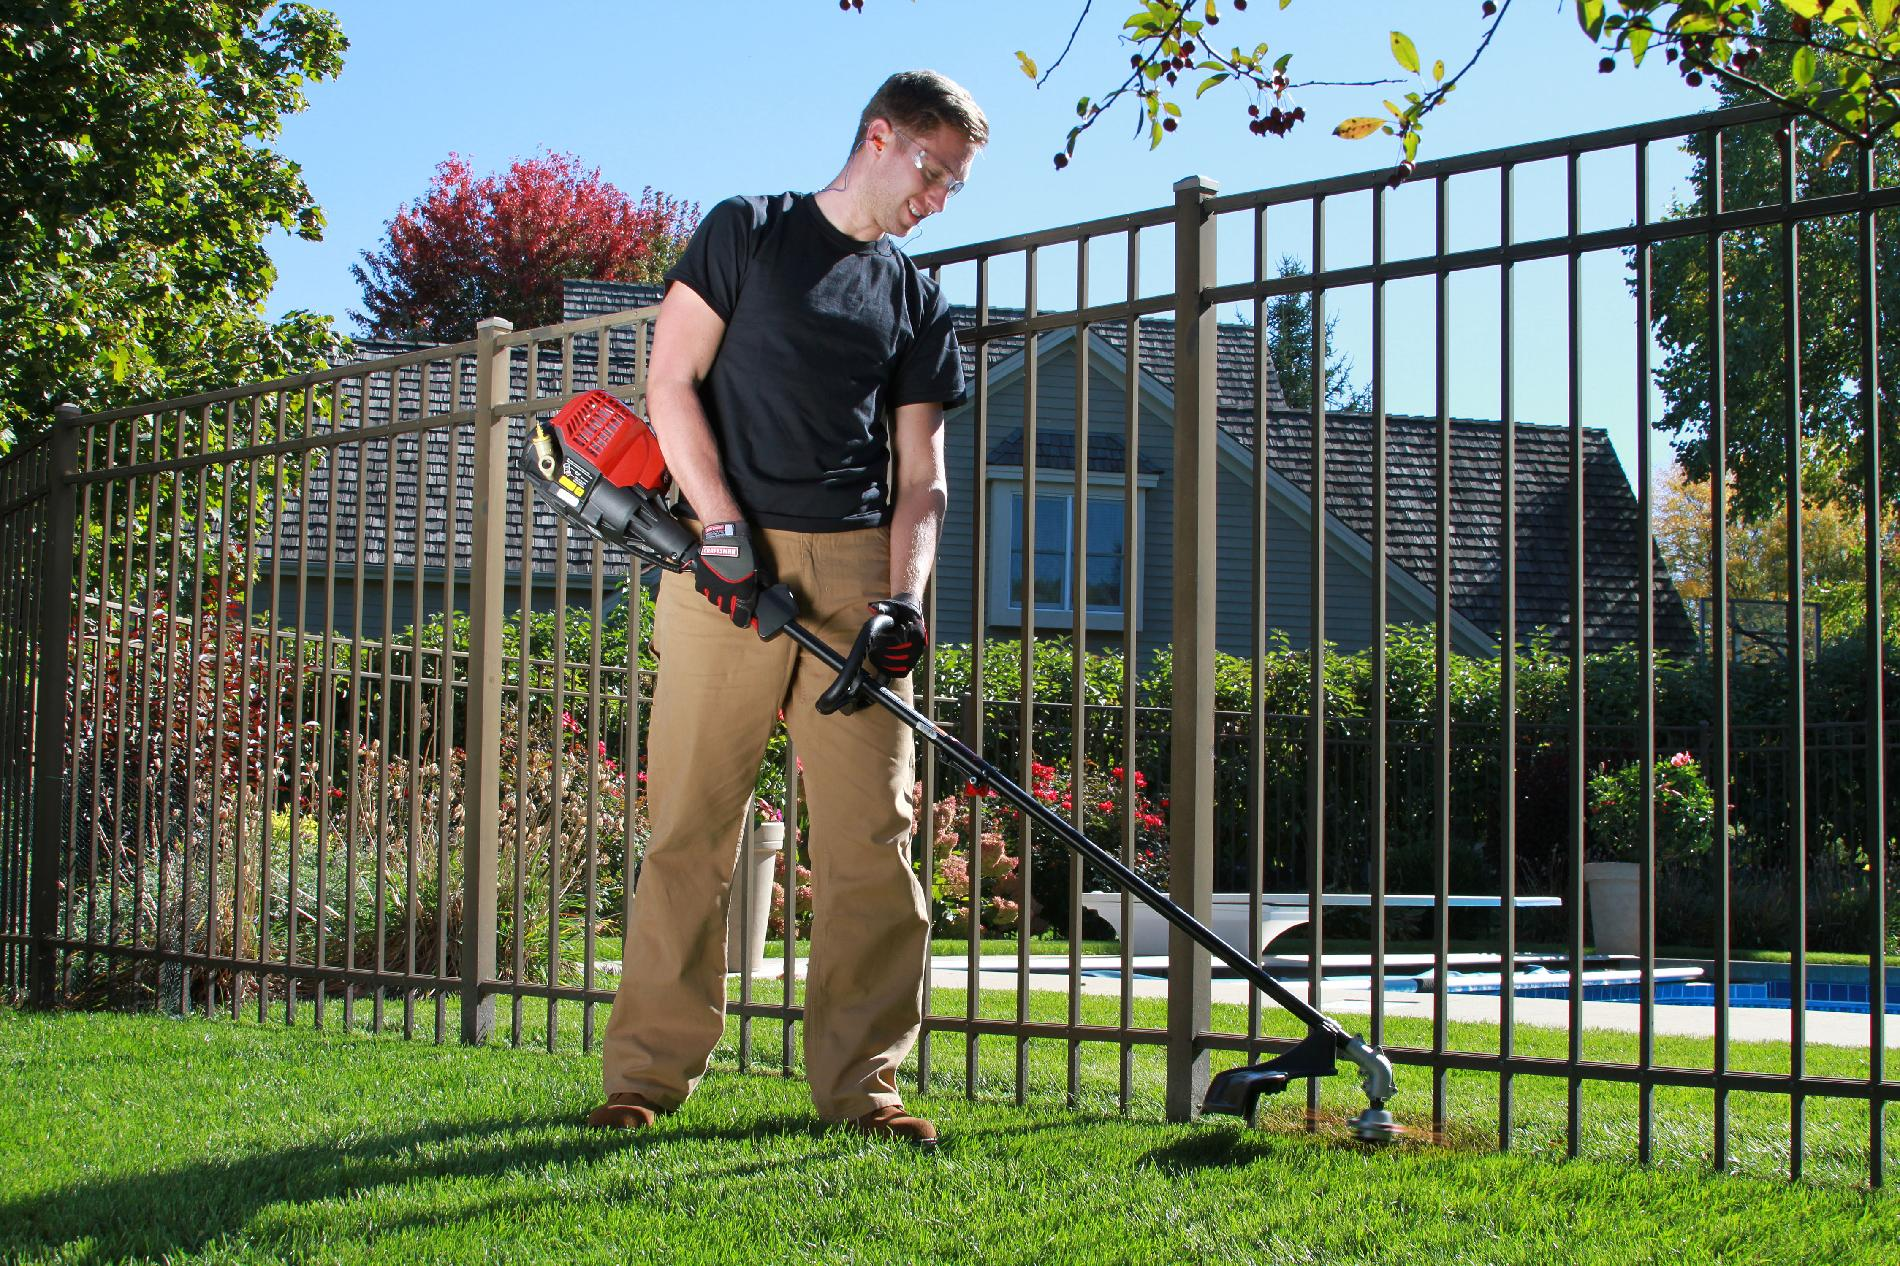 Craftsman 30cc* 4-Cycle Straight Shaft Weedwacker™Gas Trimmer.